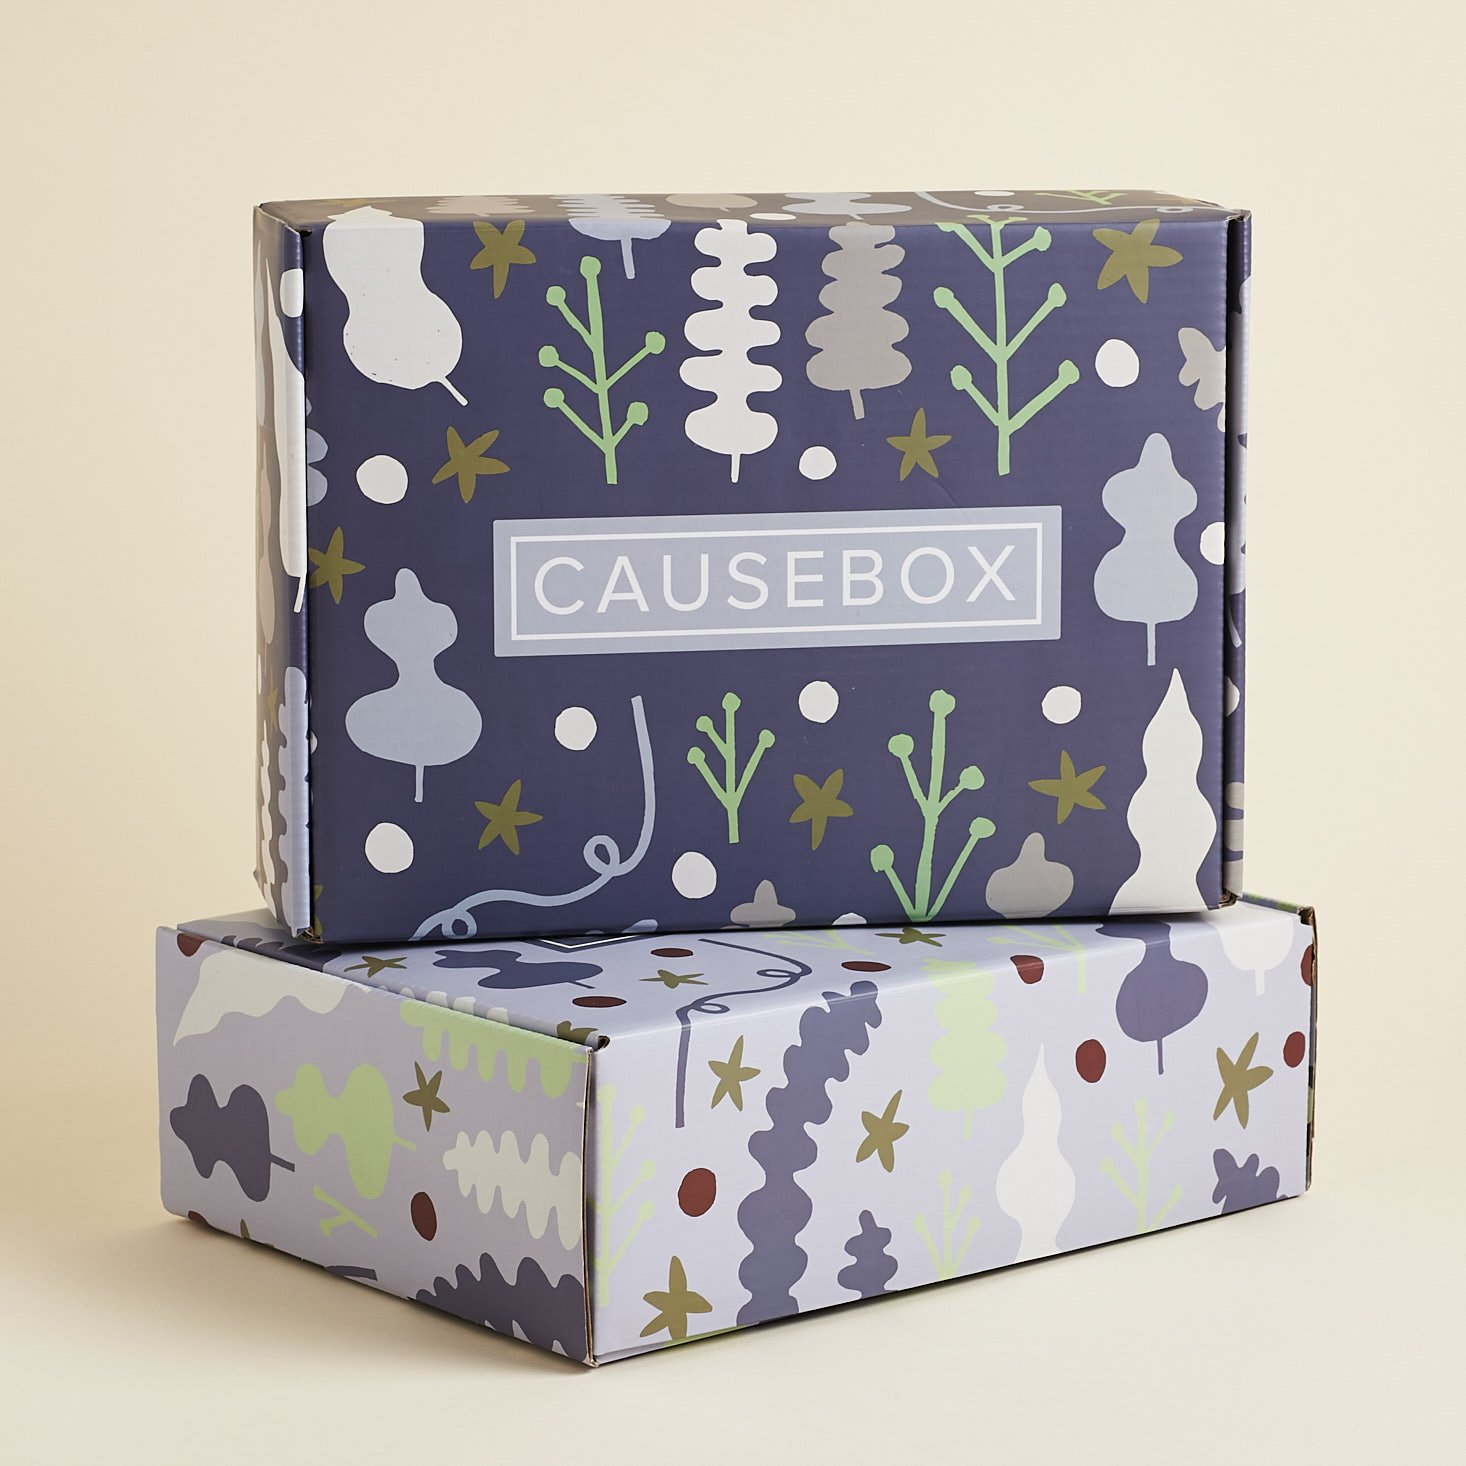 CAUSEBOX Winter 2019 Welcome Box Review + Coupon